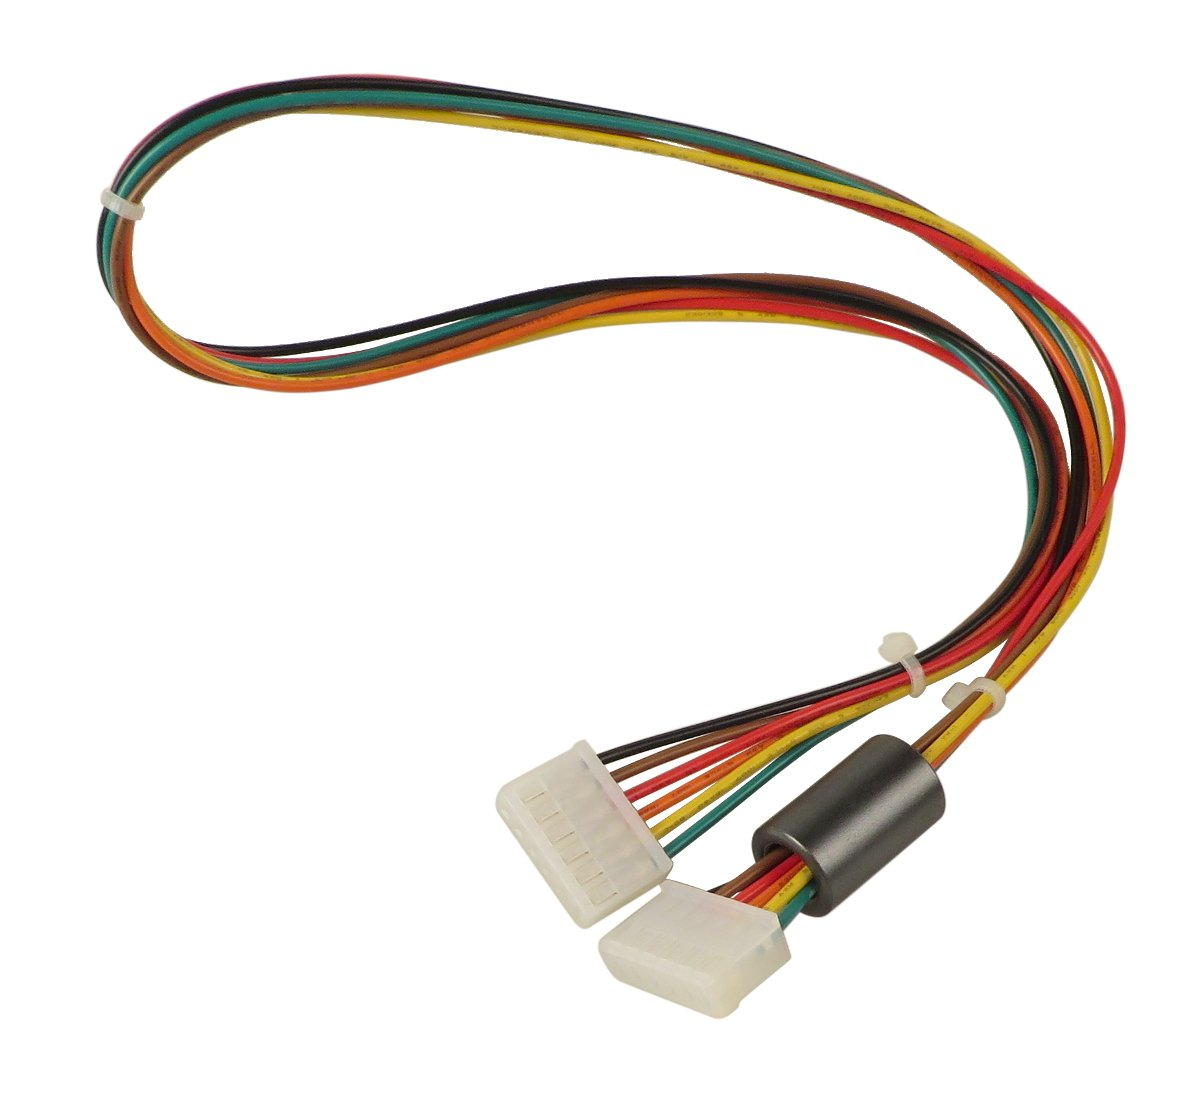 Kurzweil 6280715680  6-Pin 680mm Power Cable for PC3LE7 6280715680